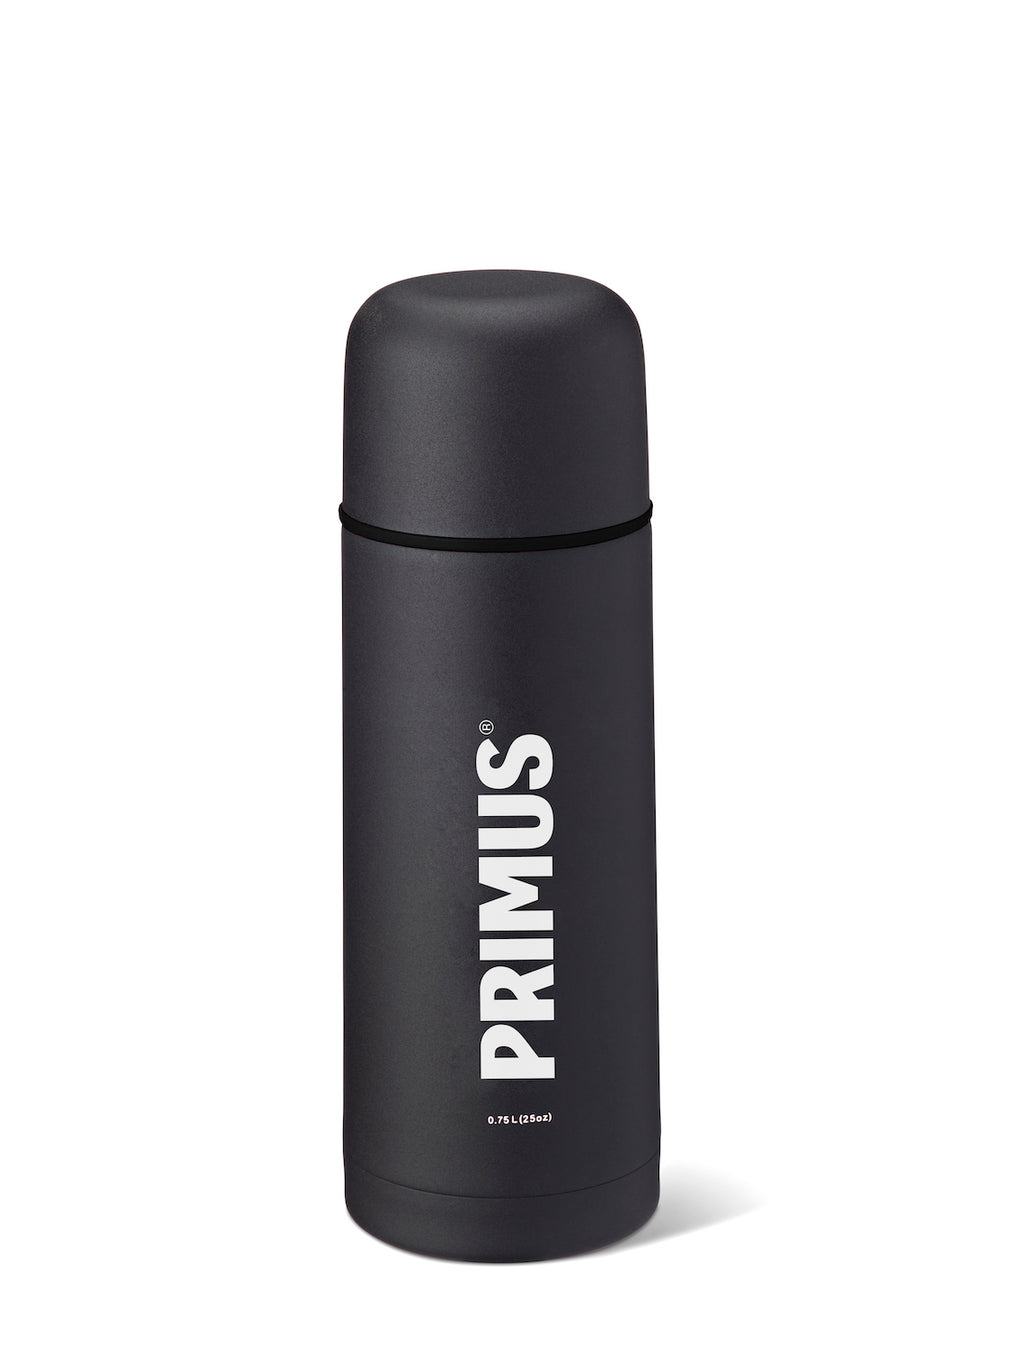 Primus THERMOFLASCHE COLOUR schwarz / WILDHOOD store